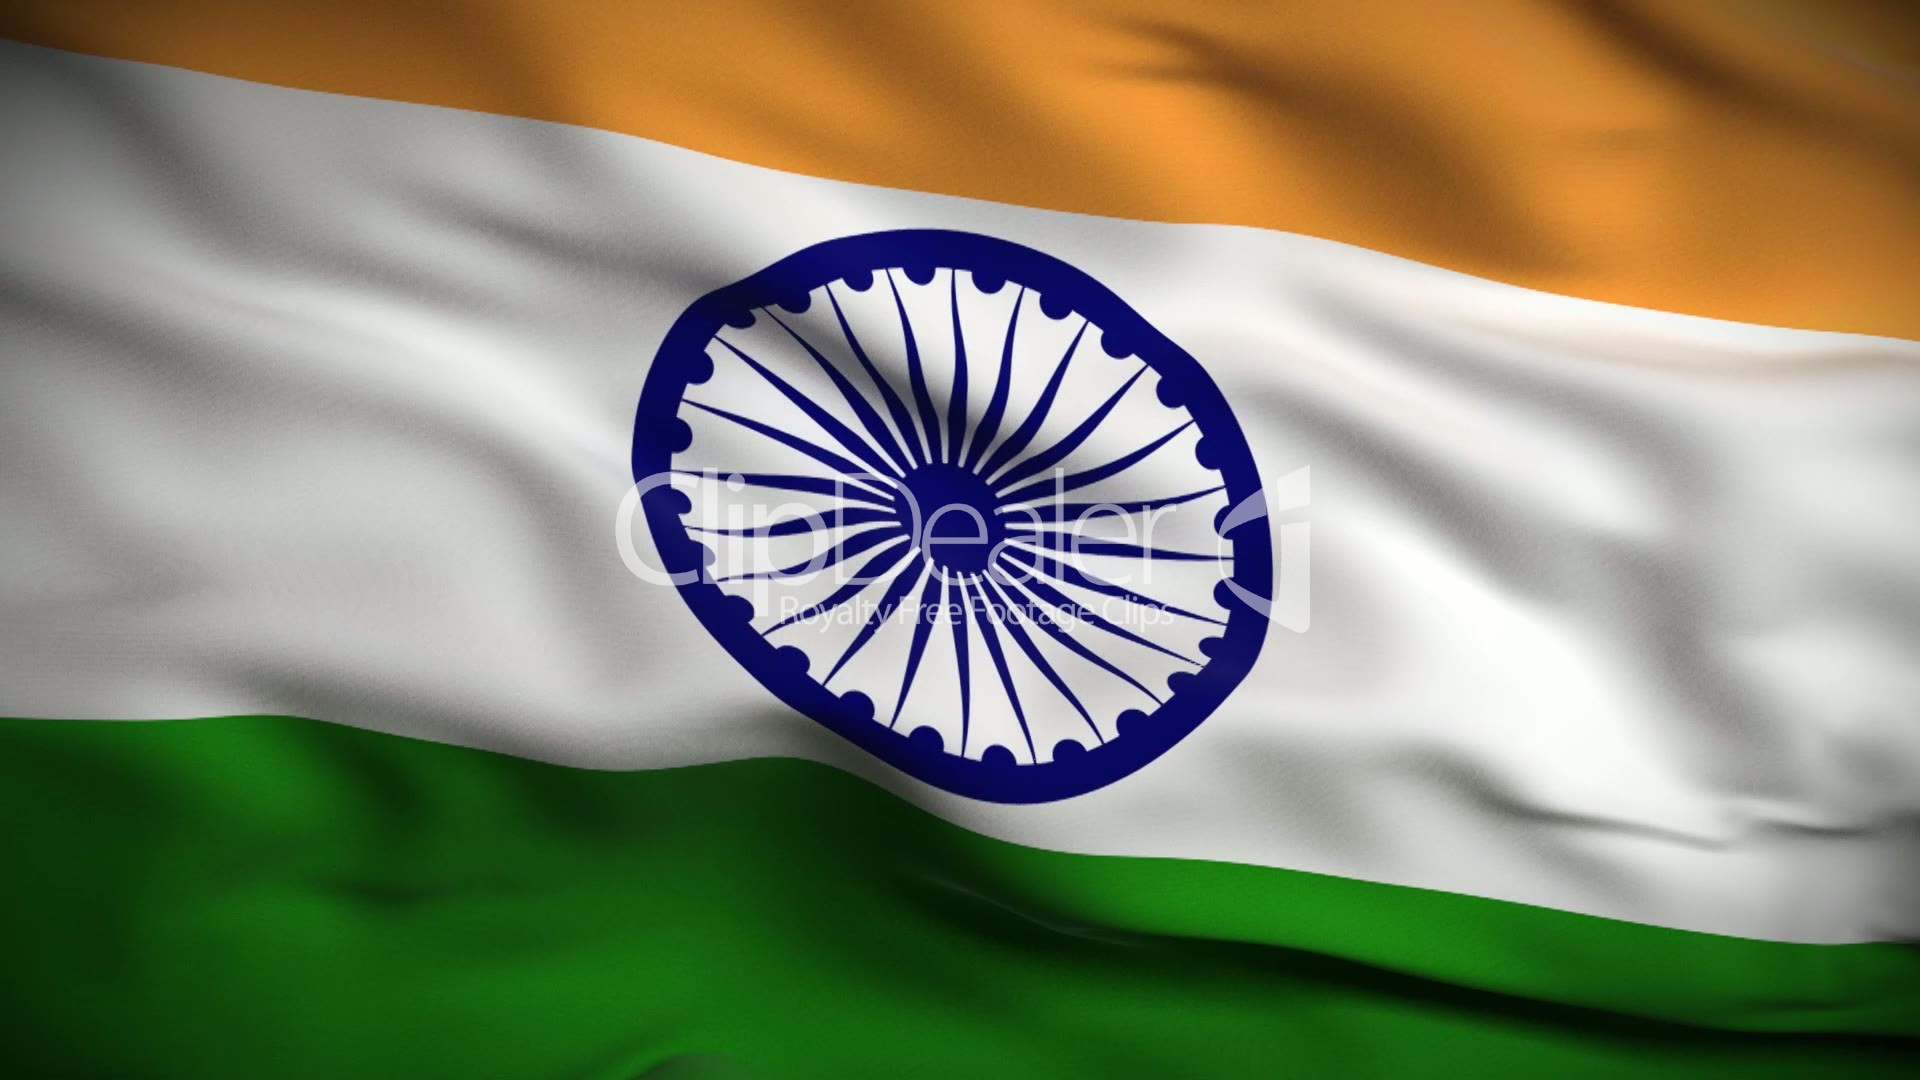 Indian Flag Images Hd720p: Indian Flag HD. Looped.: Royalty-free Video And Stock Footage